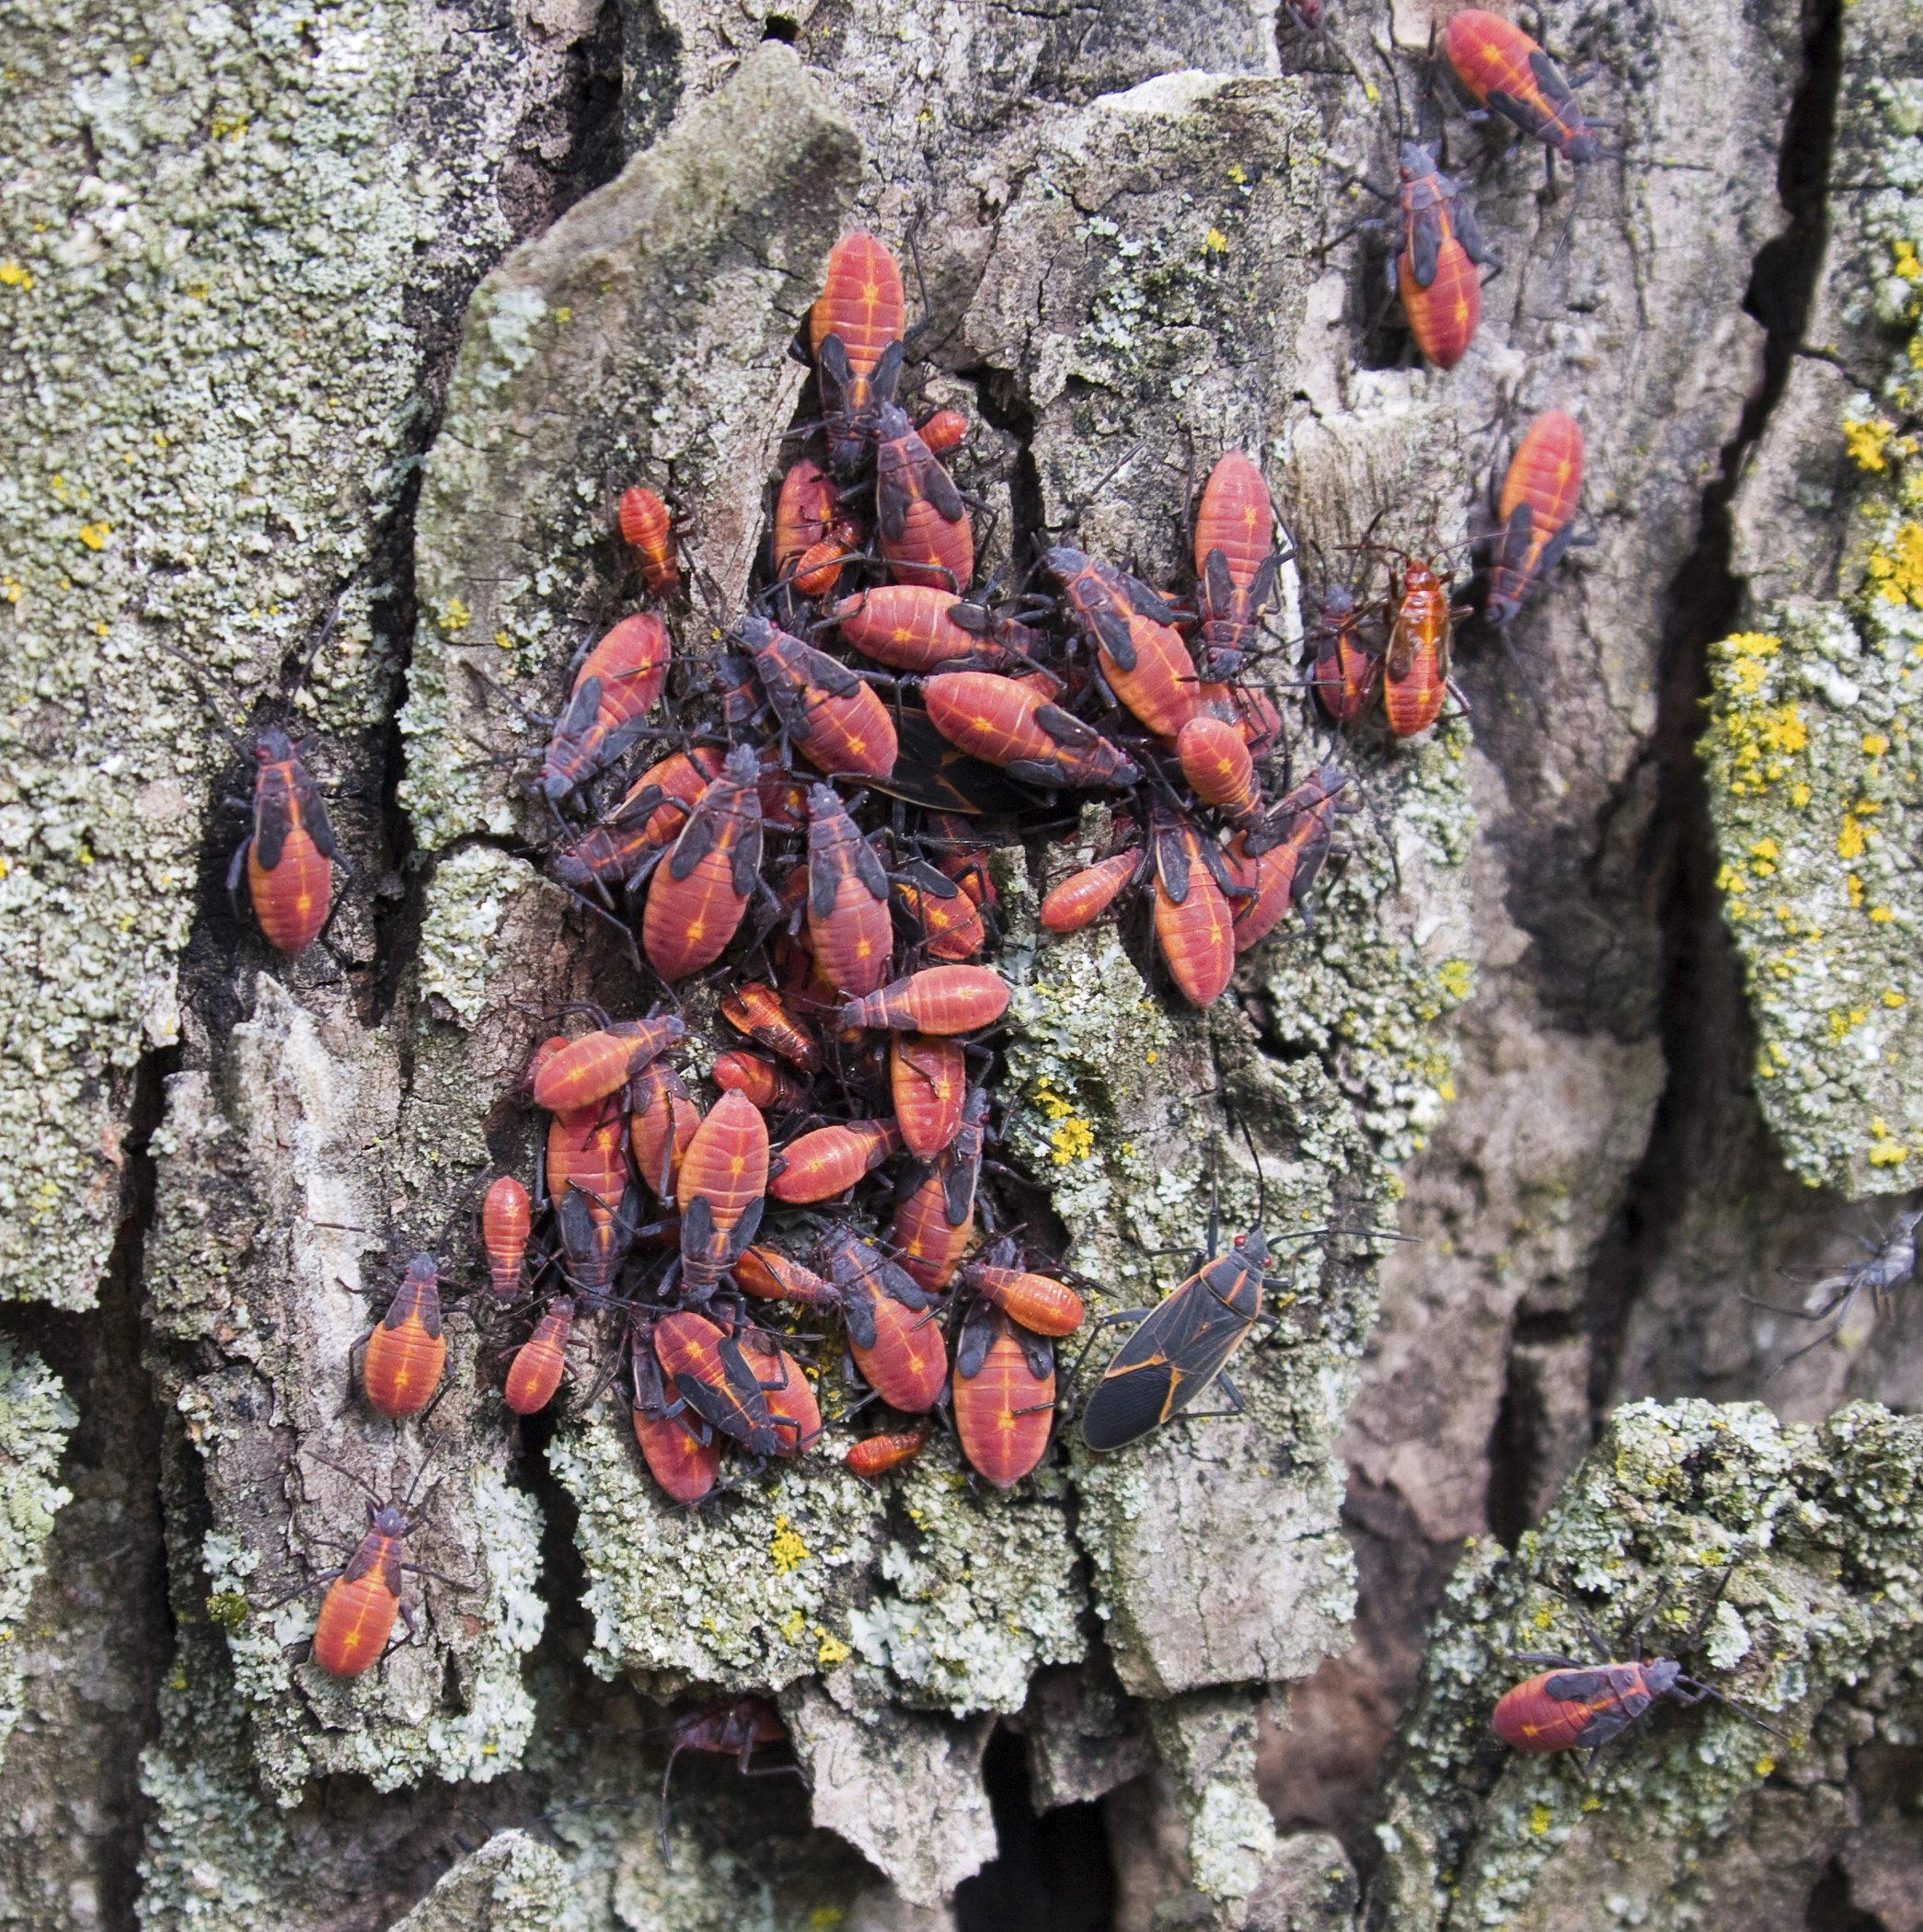 Boxelder Bug Control Methods How To Get Rid Of Boxelder Bugs In